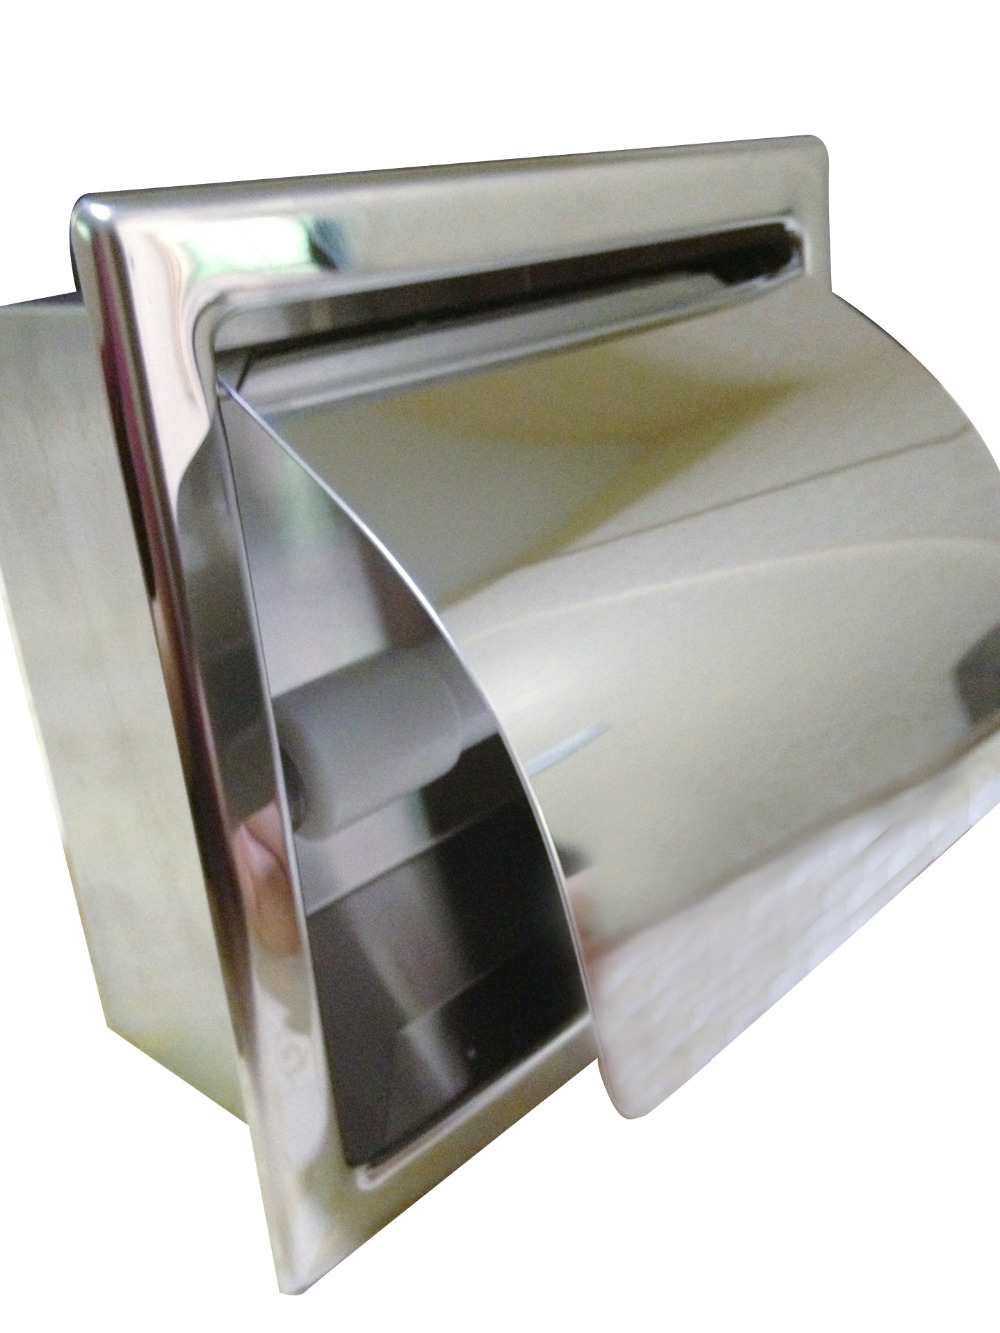 Recessed Stainless Steel Bathroom Toilet Roll Paper Holder